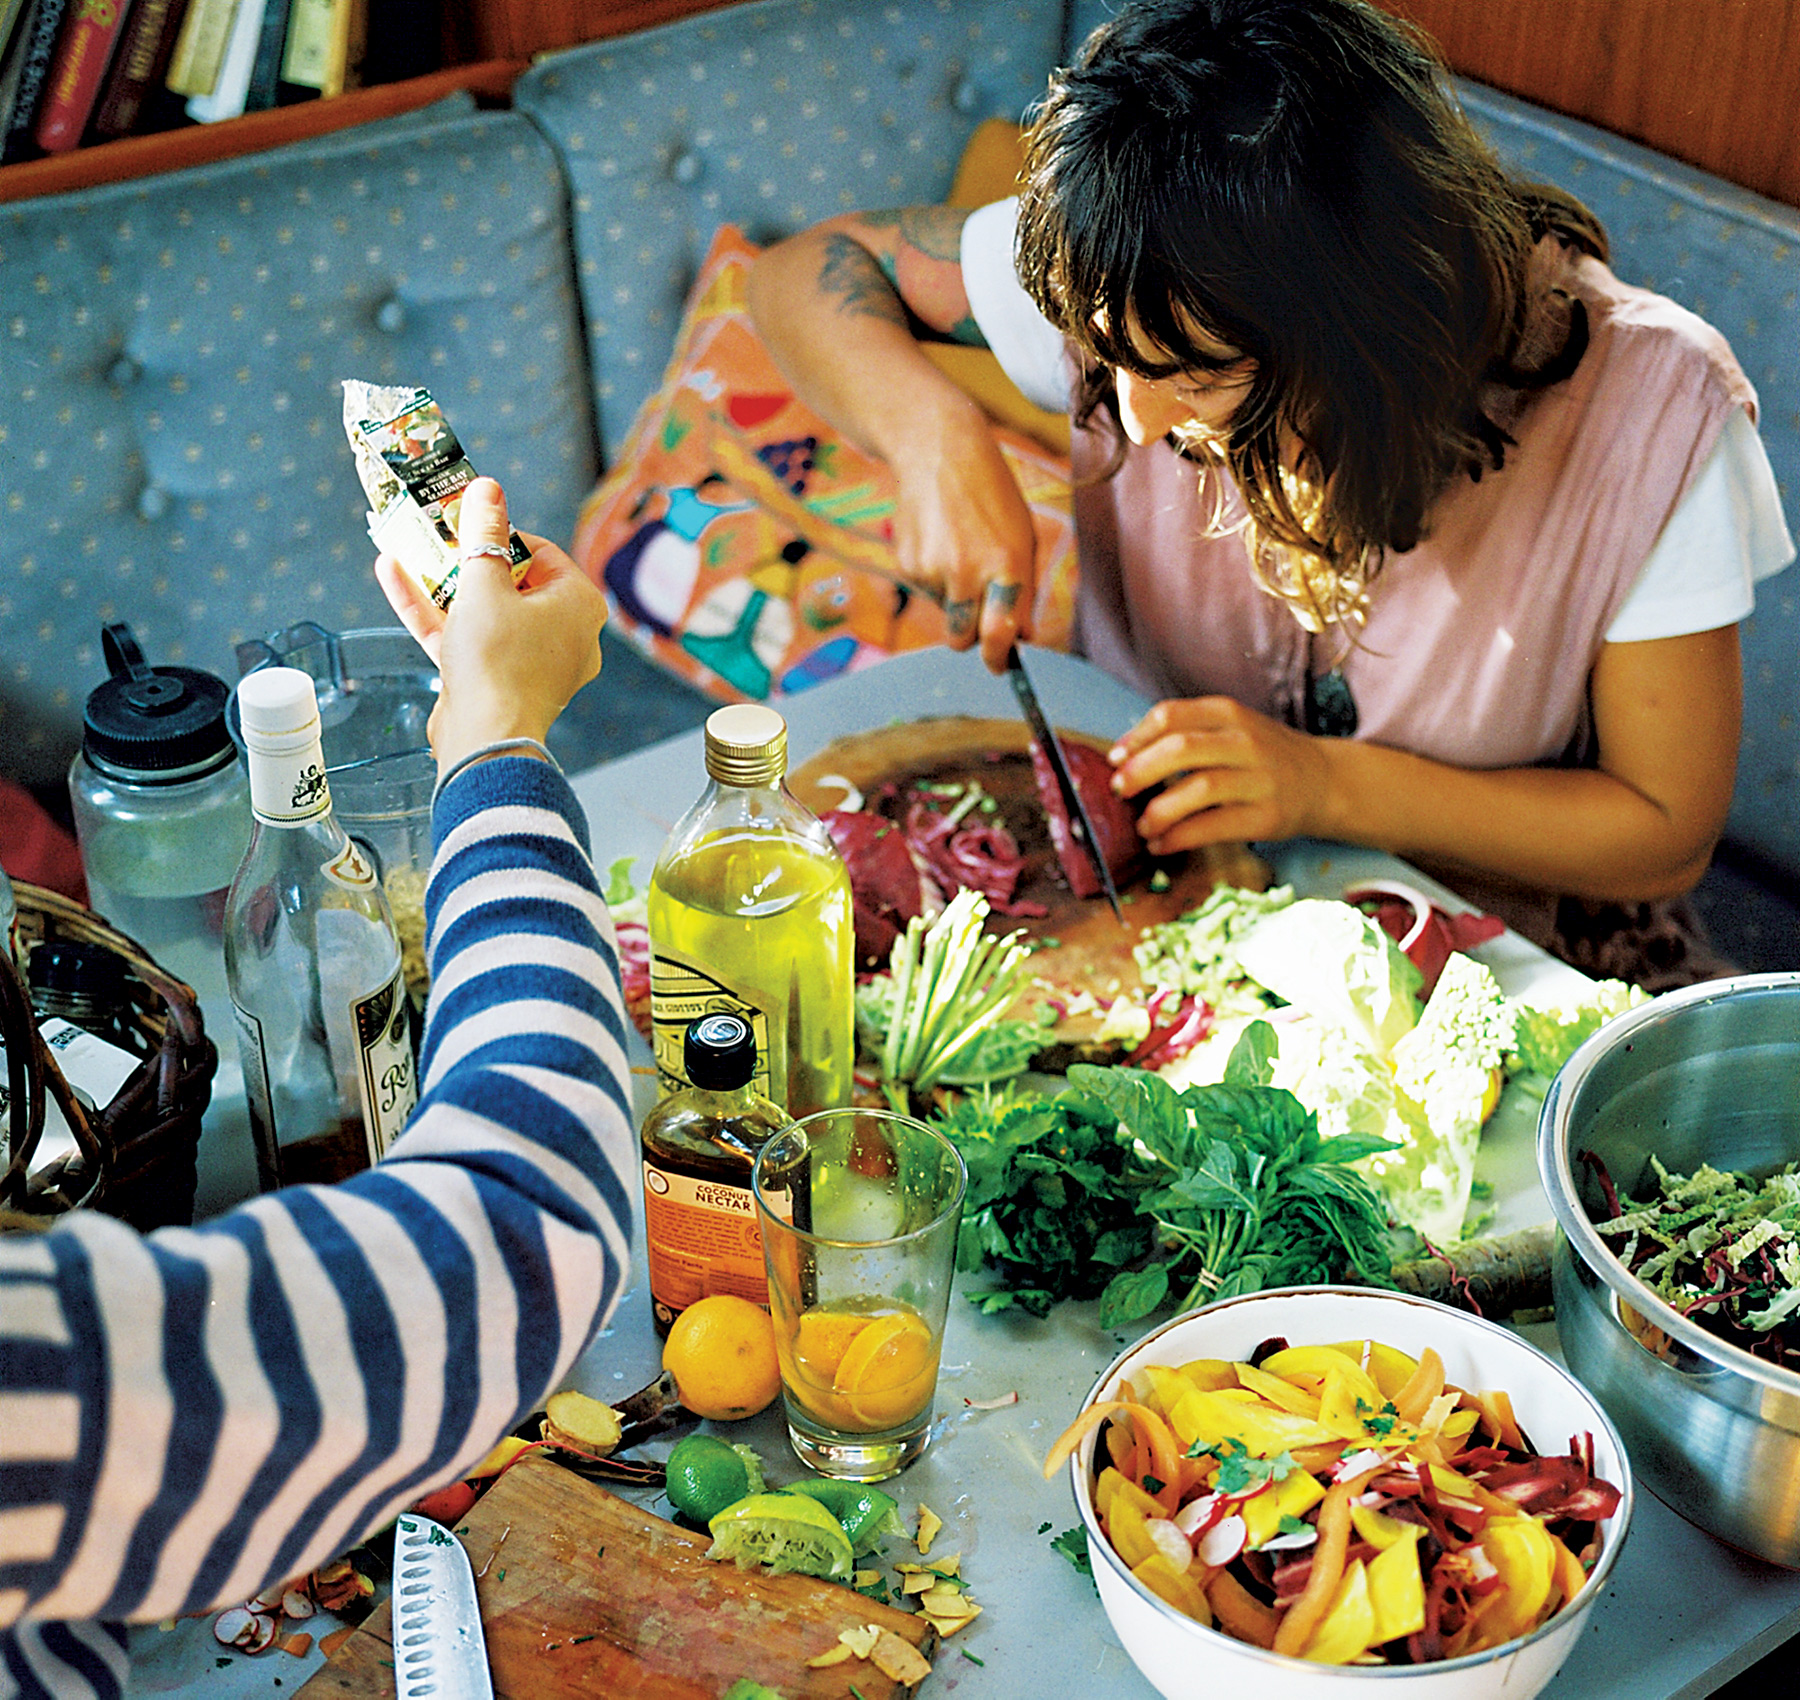 'The Tiny Mess' Of Great Food From Small Kitchens